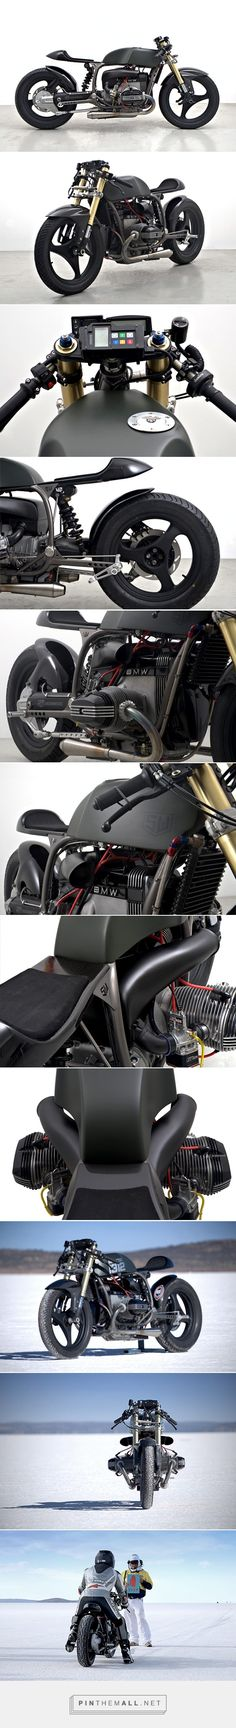 '87+BMW+R100+–+Skrunkwerks+-+created+via+http://pinthemall.net